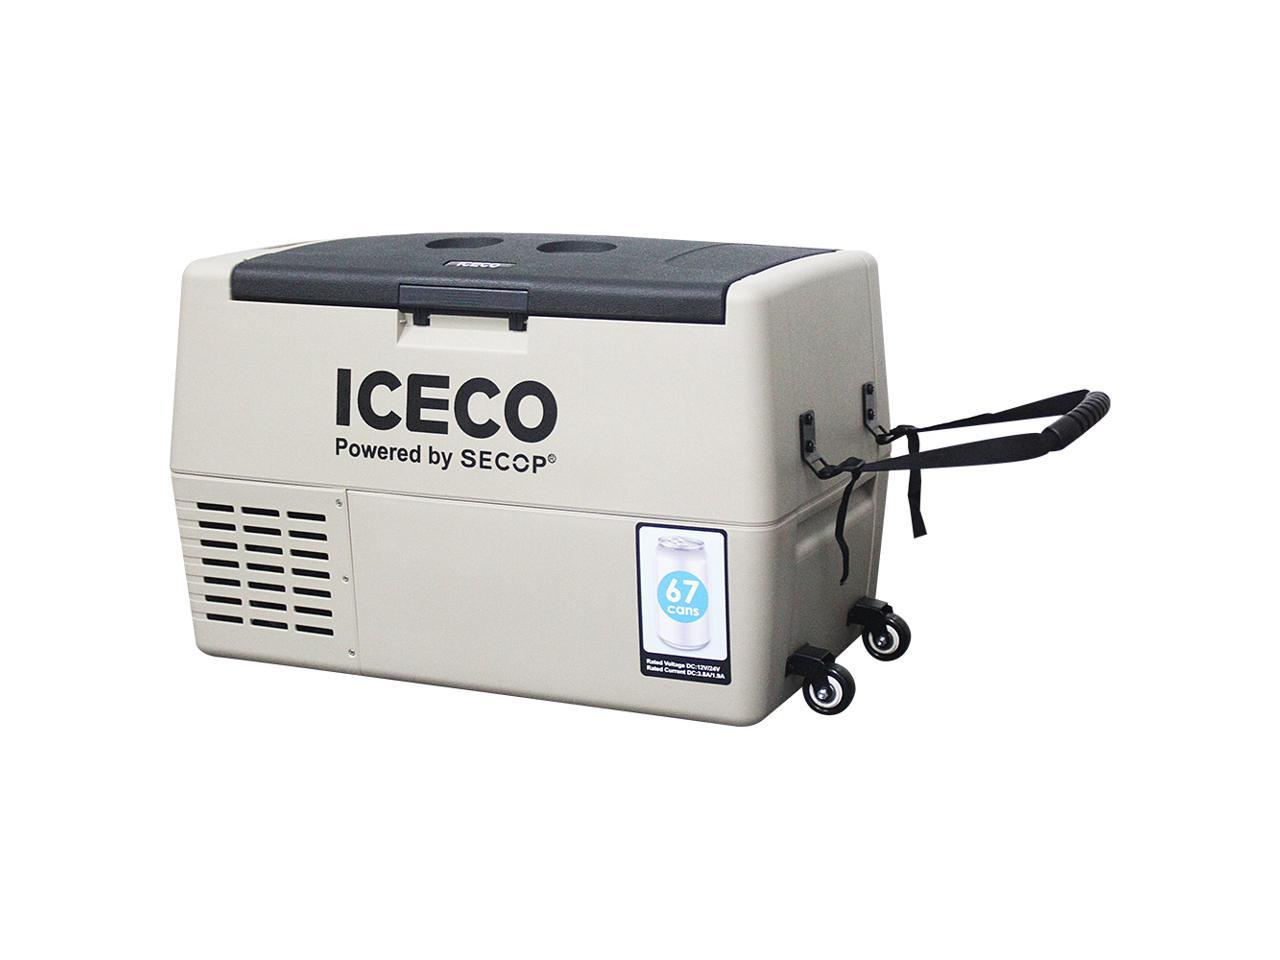 ICECO TR45 Portable Refrigerator 45 Liter with Reversible Door